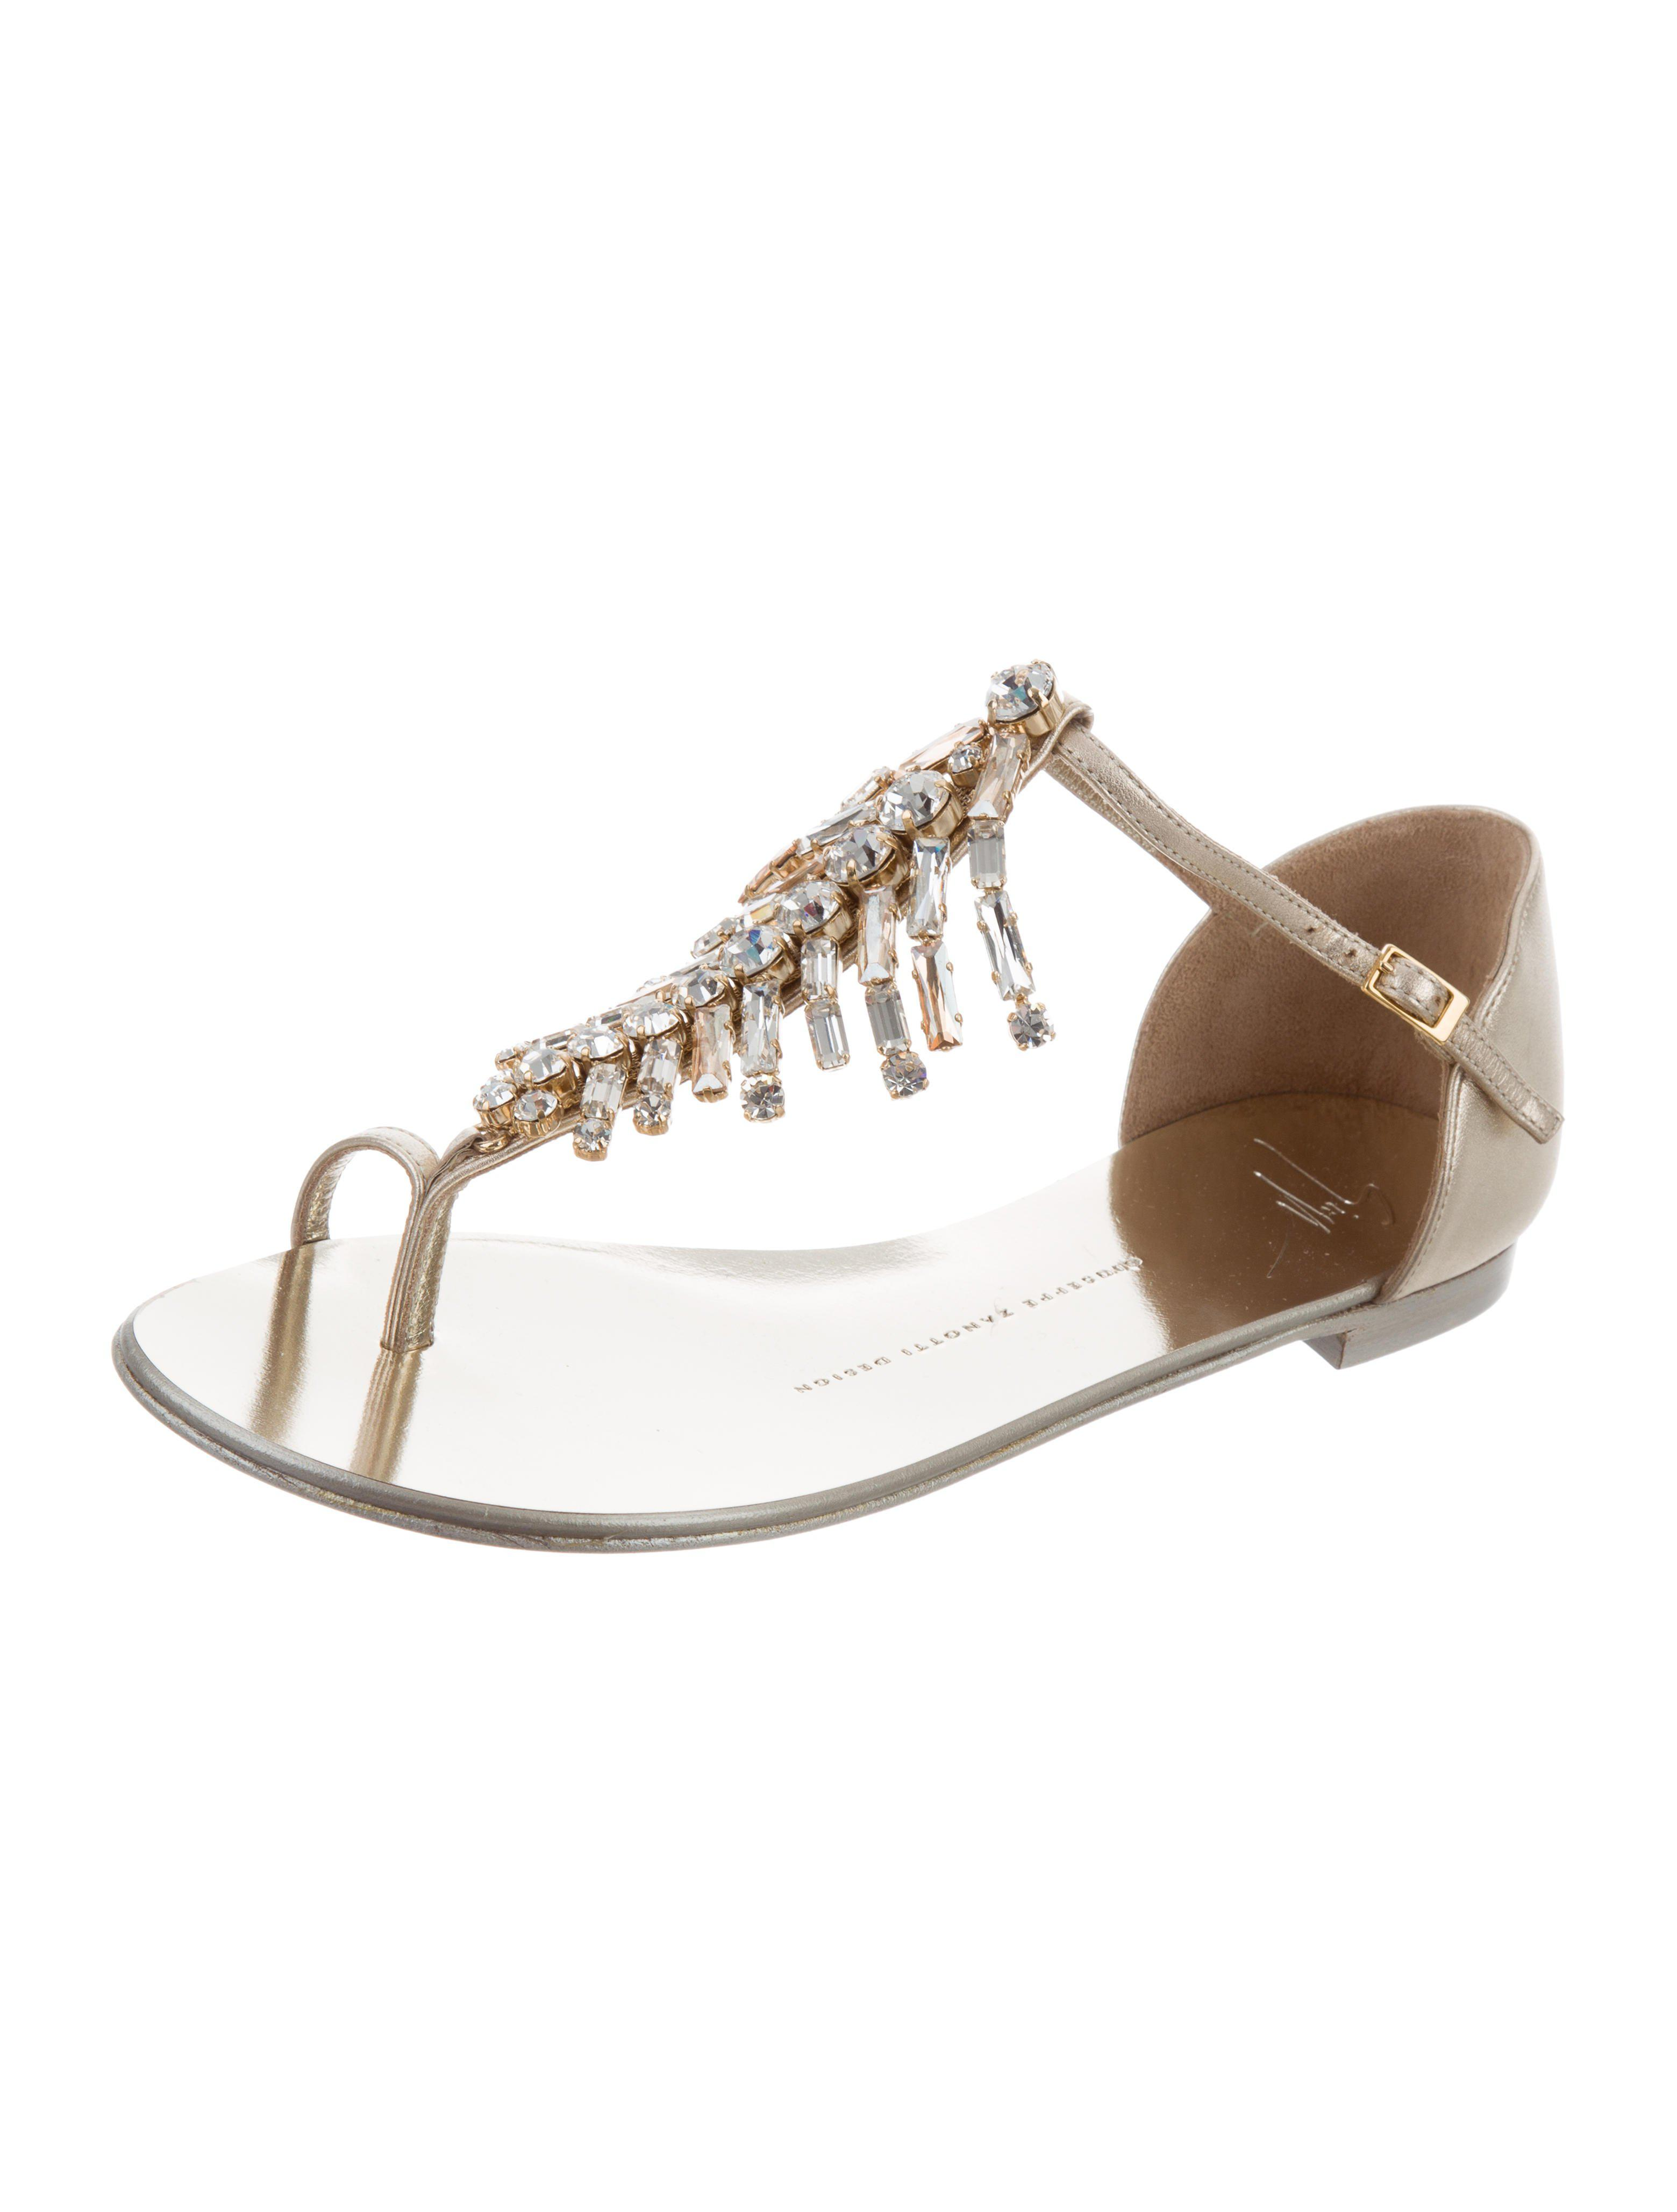 Giuseppe Zanotti Embellished Metallic Sandals w/ Tags cheap get authentic free shipping genuine cheap sale free shipping where can i order iPBkCU